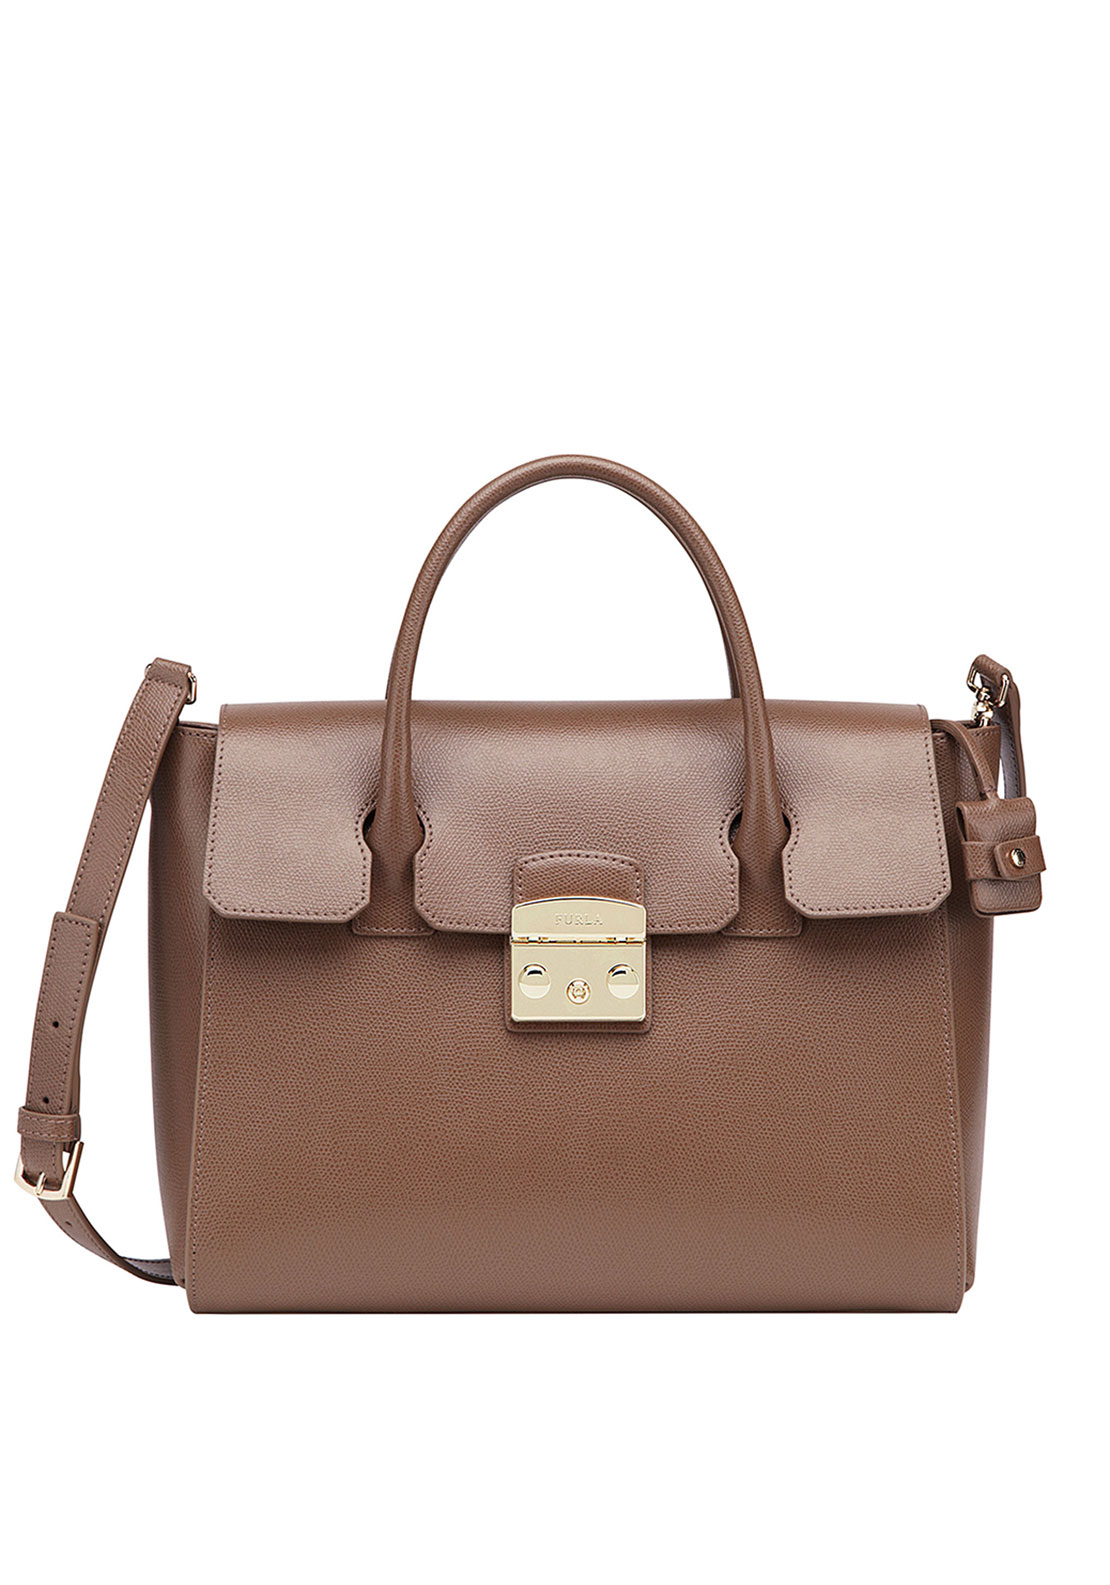 Furla Metropolis Leather Medium Satchel Bag, Brown